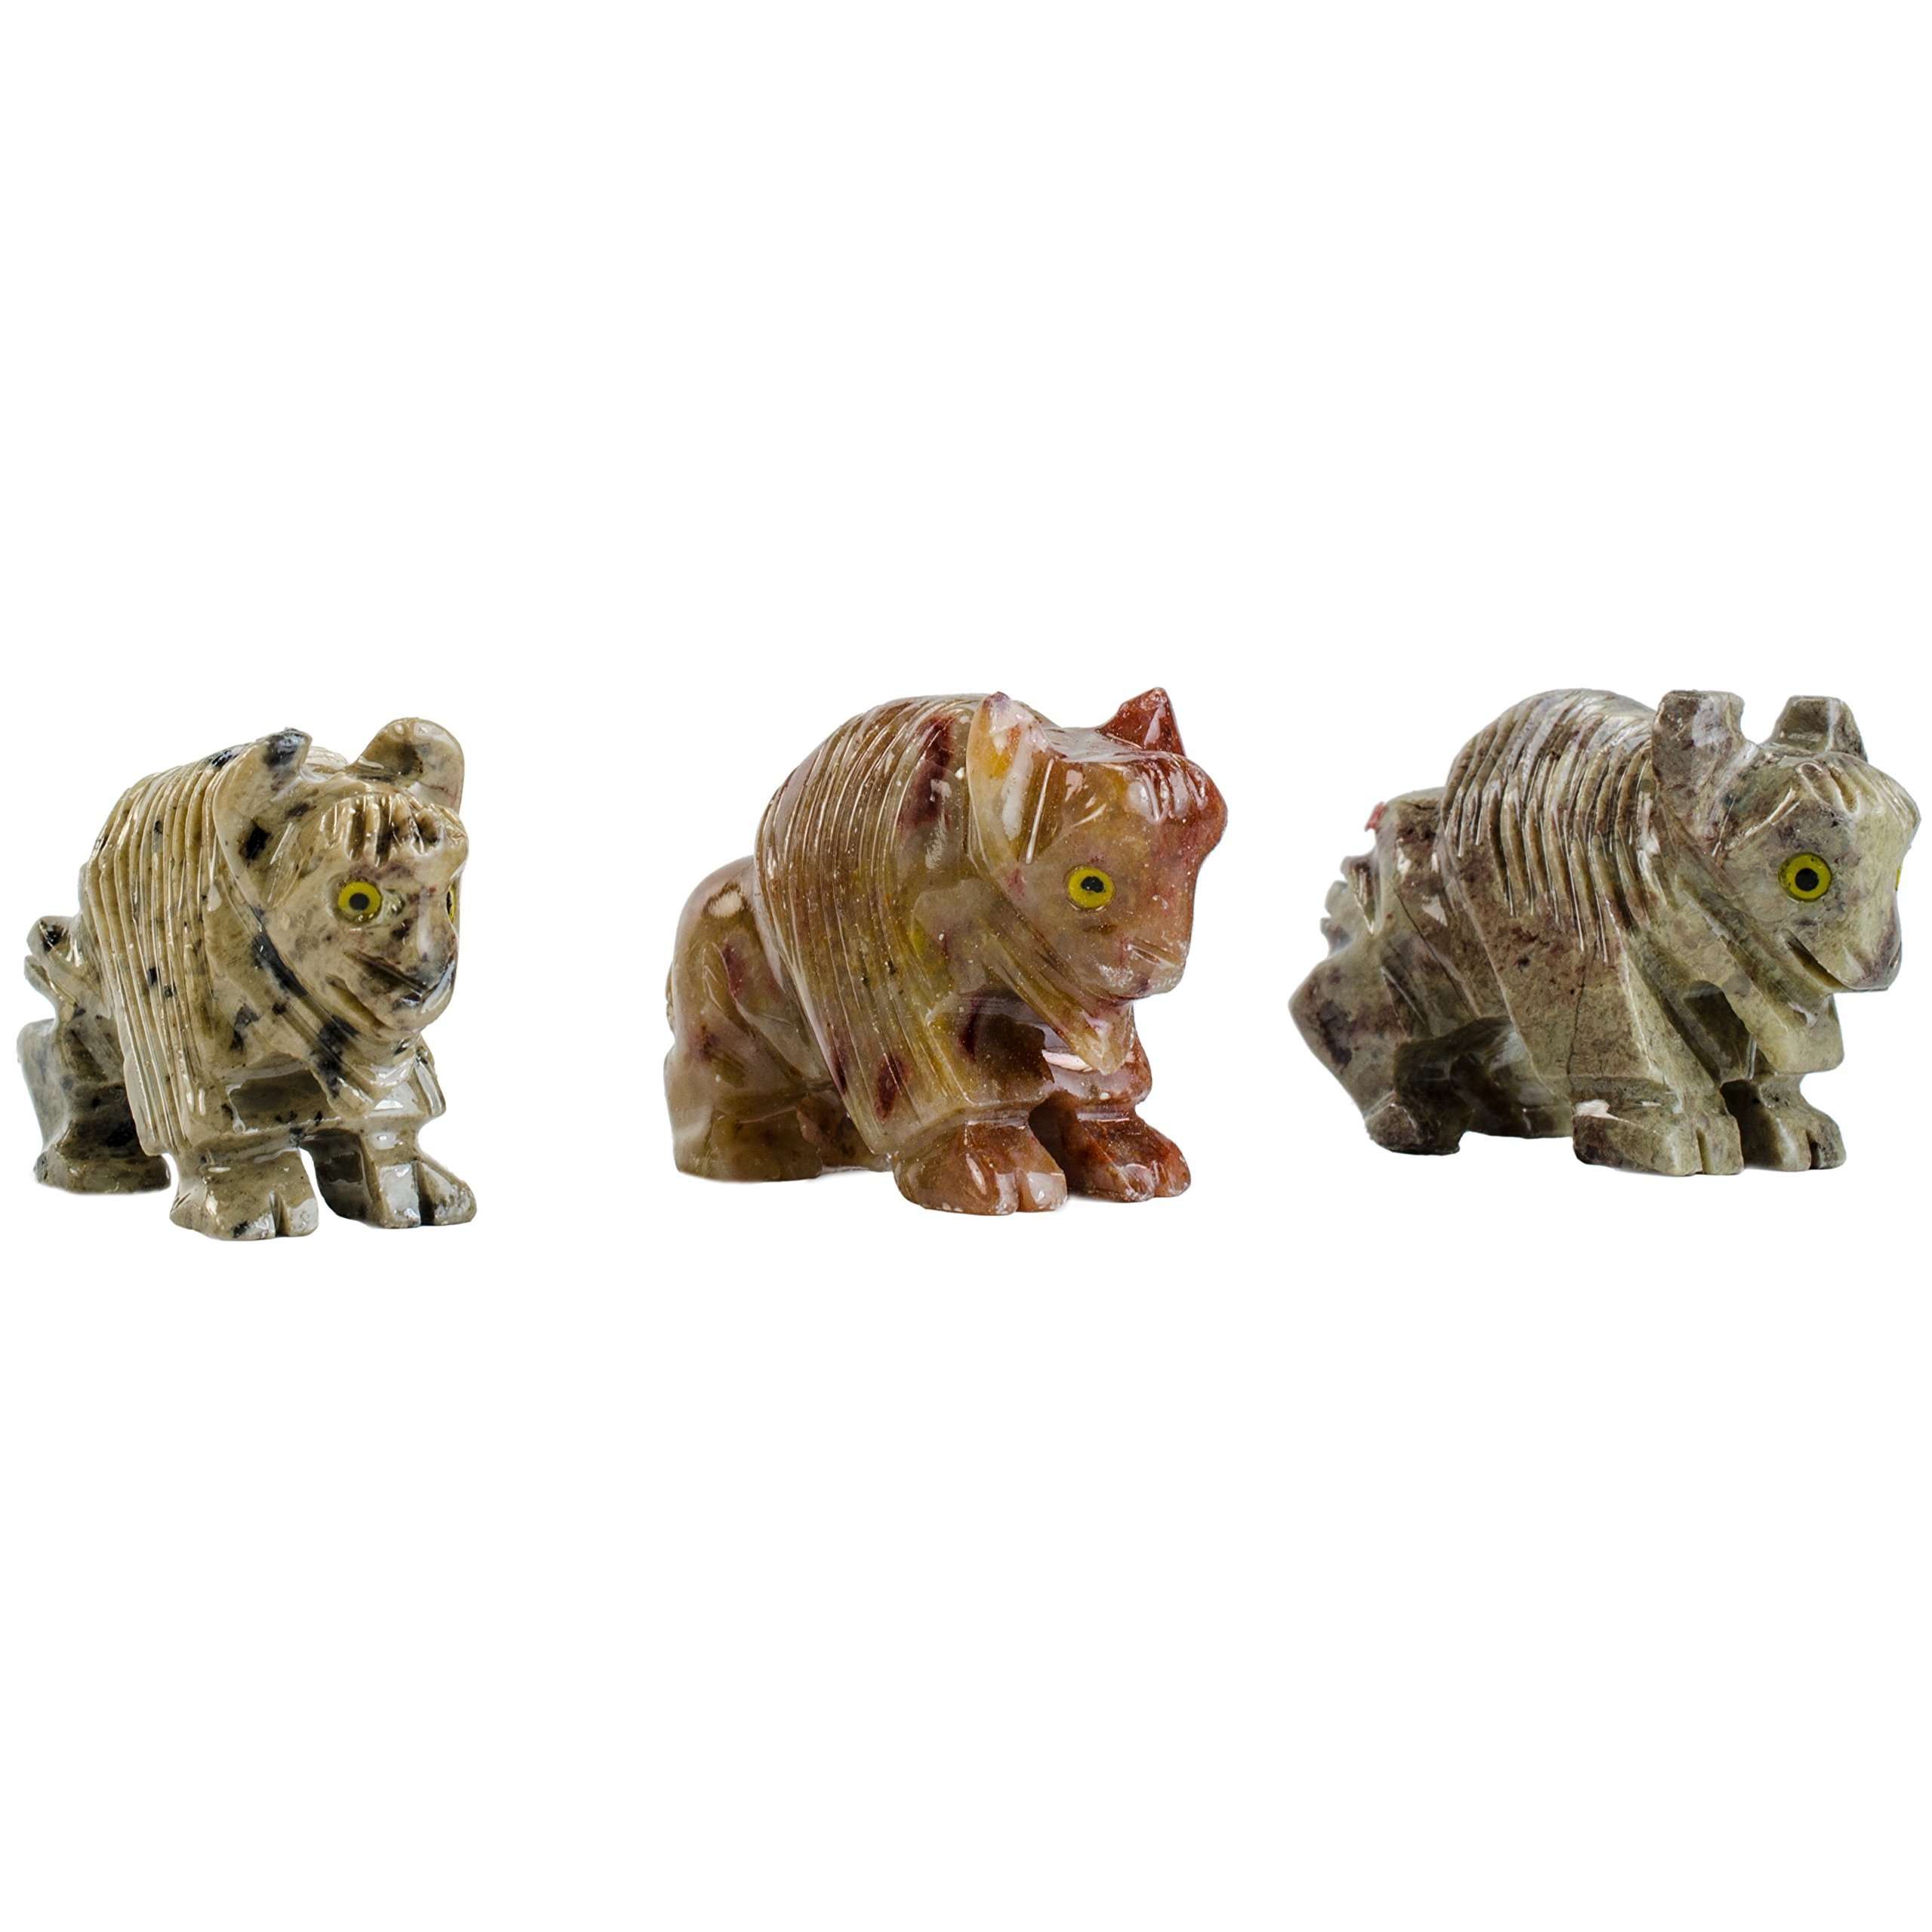 Digging Dolls : 10 pcs Artisan Buffalo Collectable Animal Figurine - Party Favors, Stocking Stuffers, Gifts, Collecting and More!